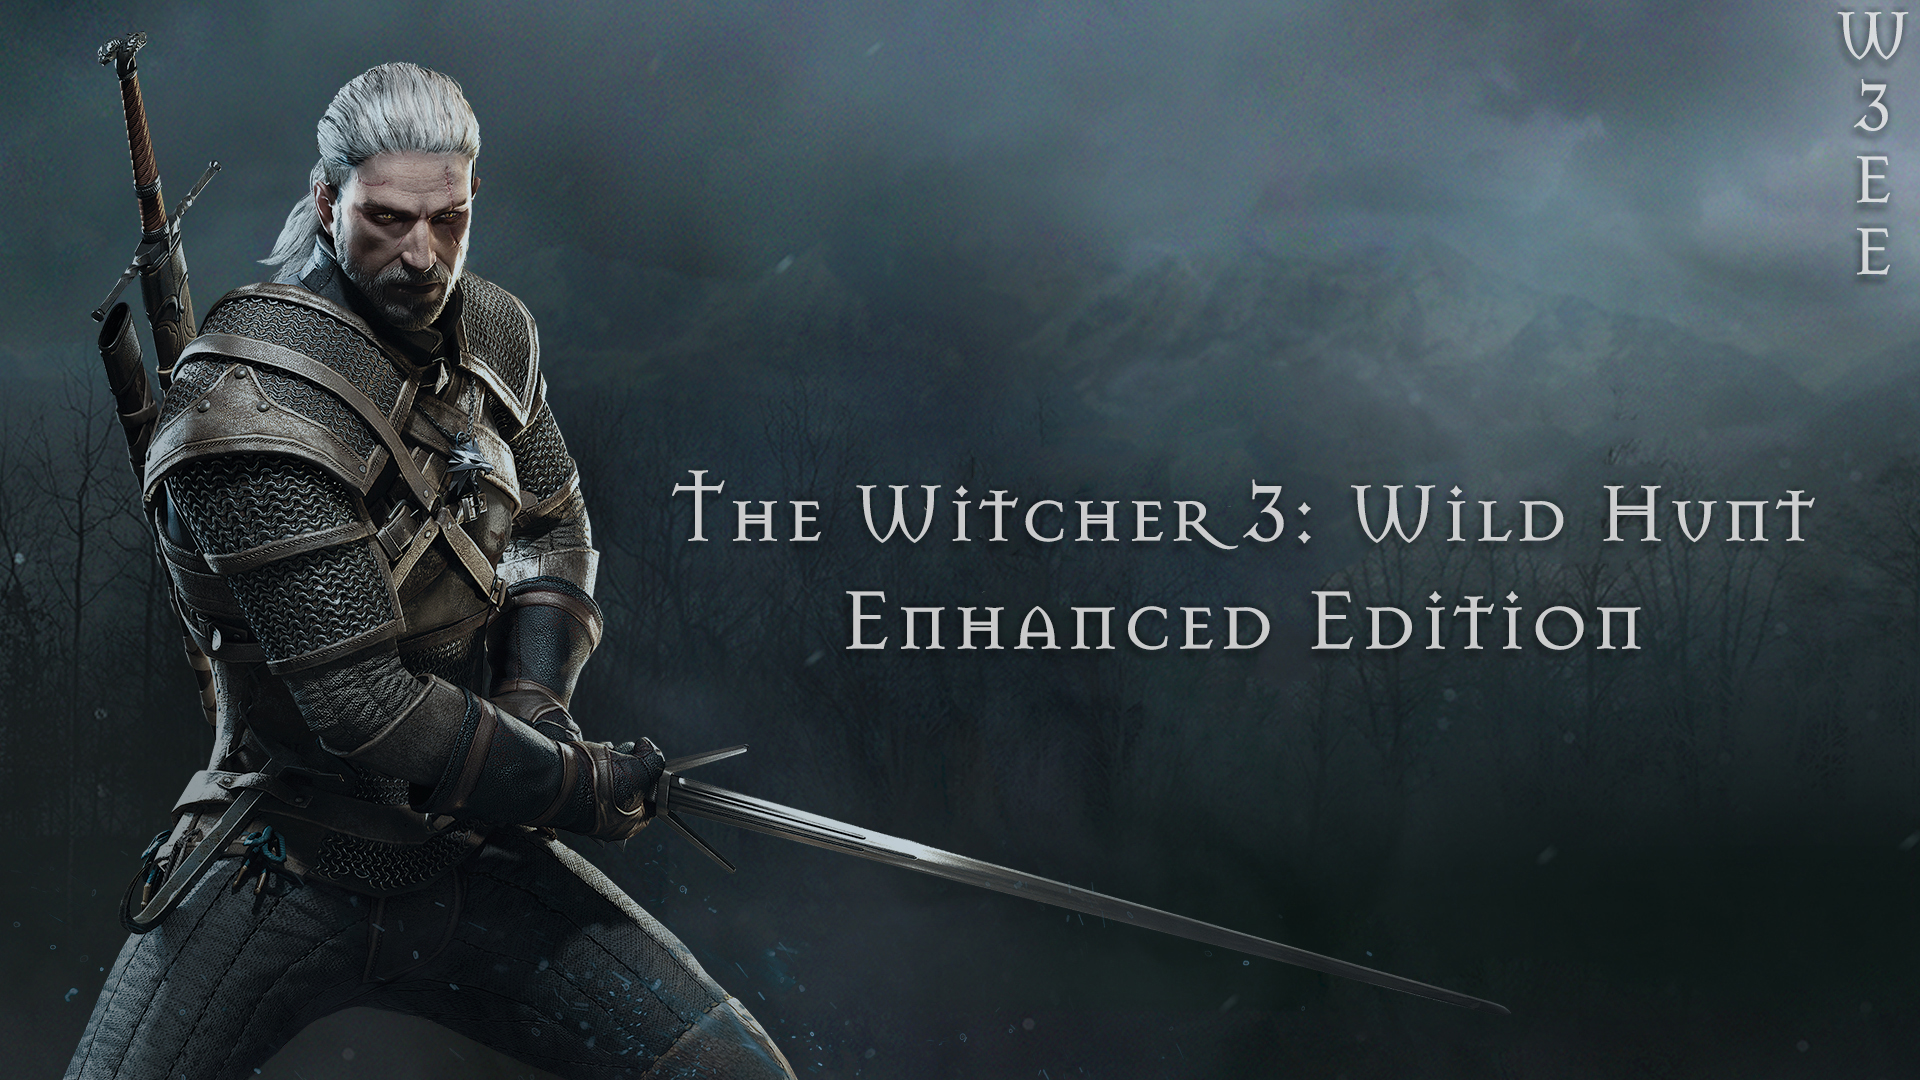 The Witcher 3 Enhanced Edition mod completely overhauls combat and